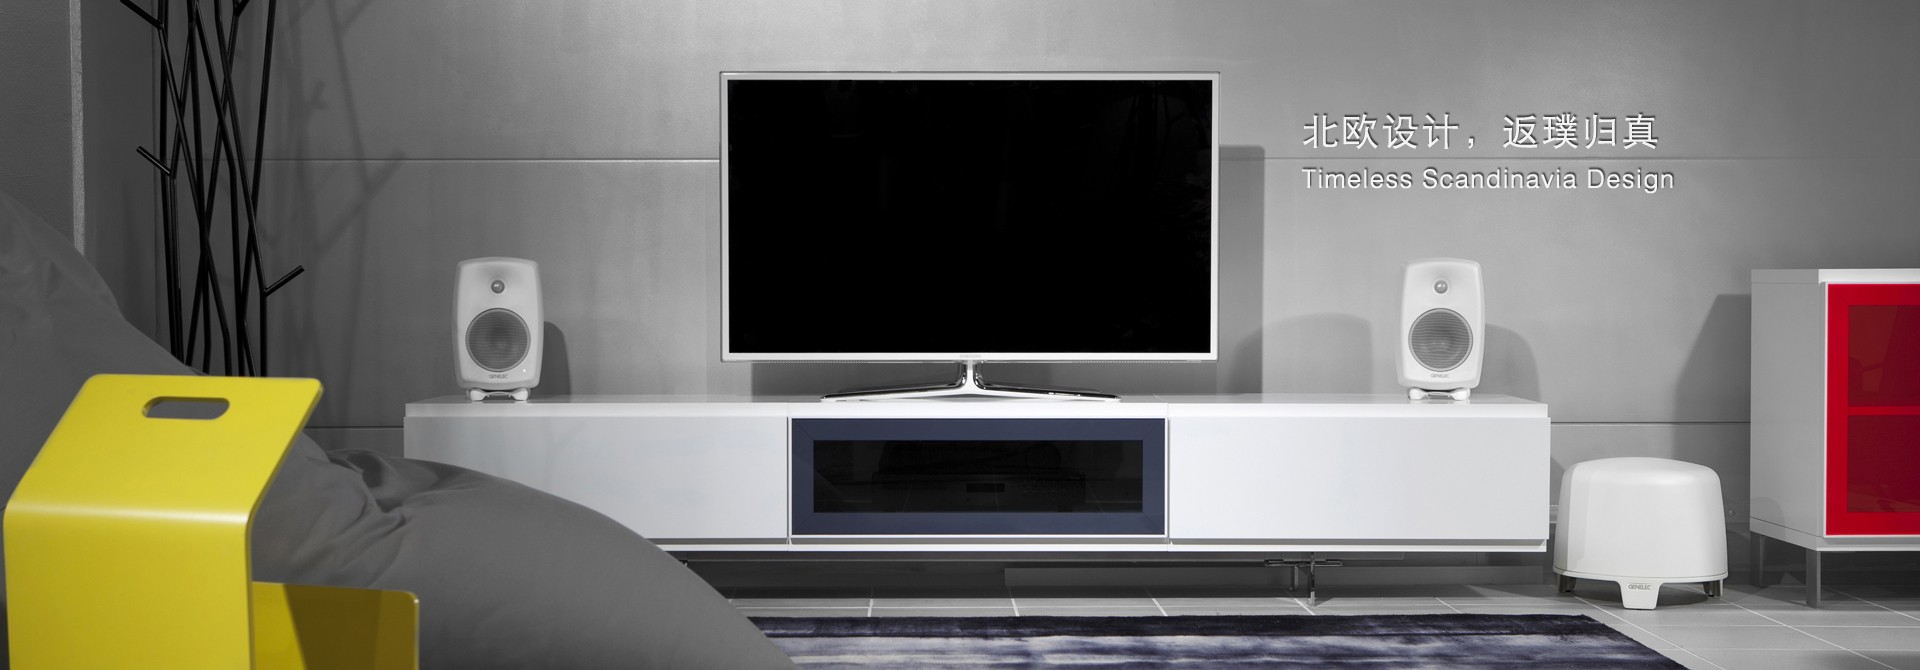 _minimalism-living-room-1920x670-with-text